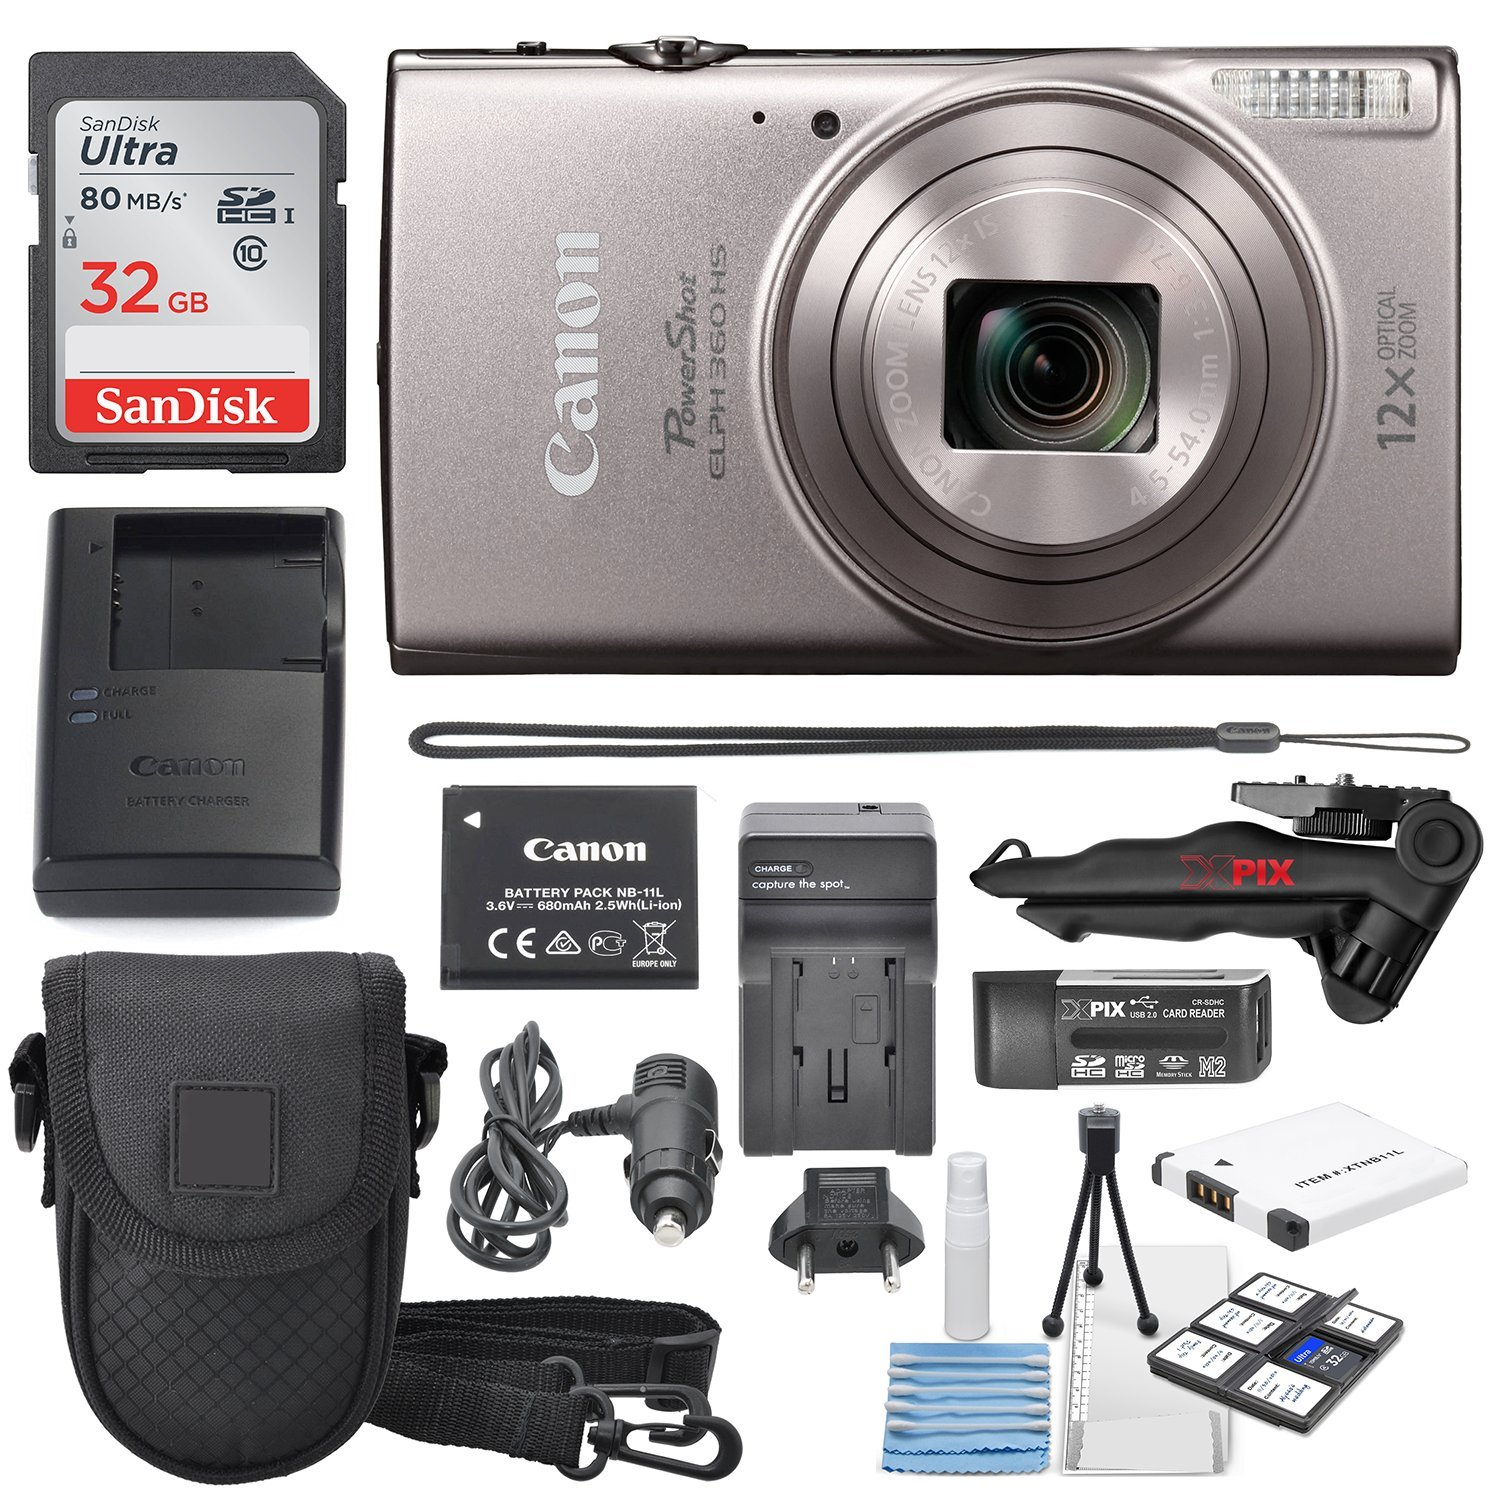 Canon PowerShot ELPH 360 HS(Silver)with 12x Optical Zoom & Built-In Wi-Fi with Deluxe Starter Kit 32GB SDHC +Flexible Tripod + AC/DC Turbo Travel Charger + Extra battery + Protective Camera Case by Canon